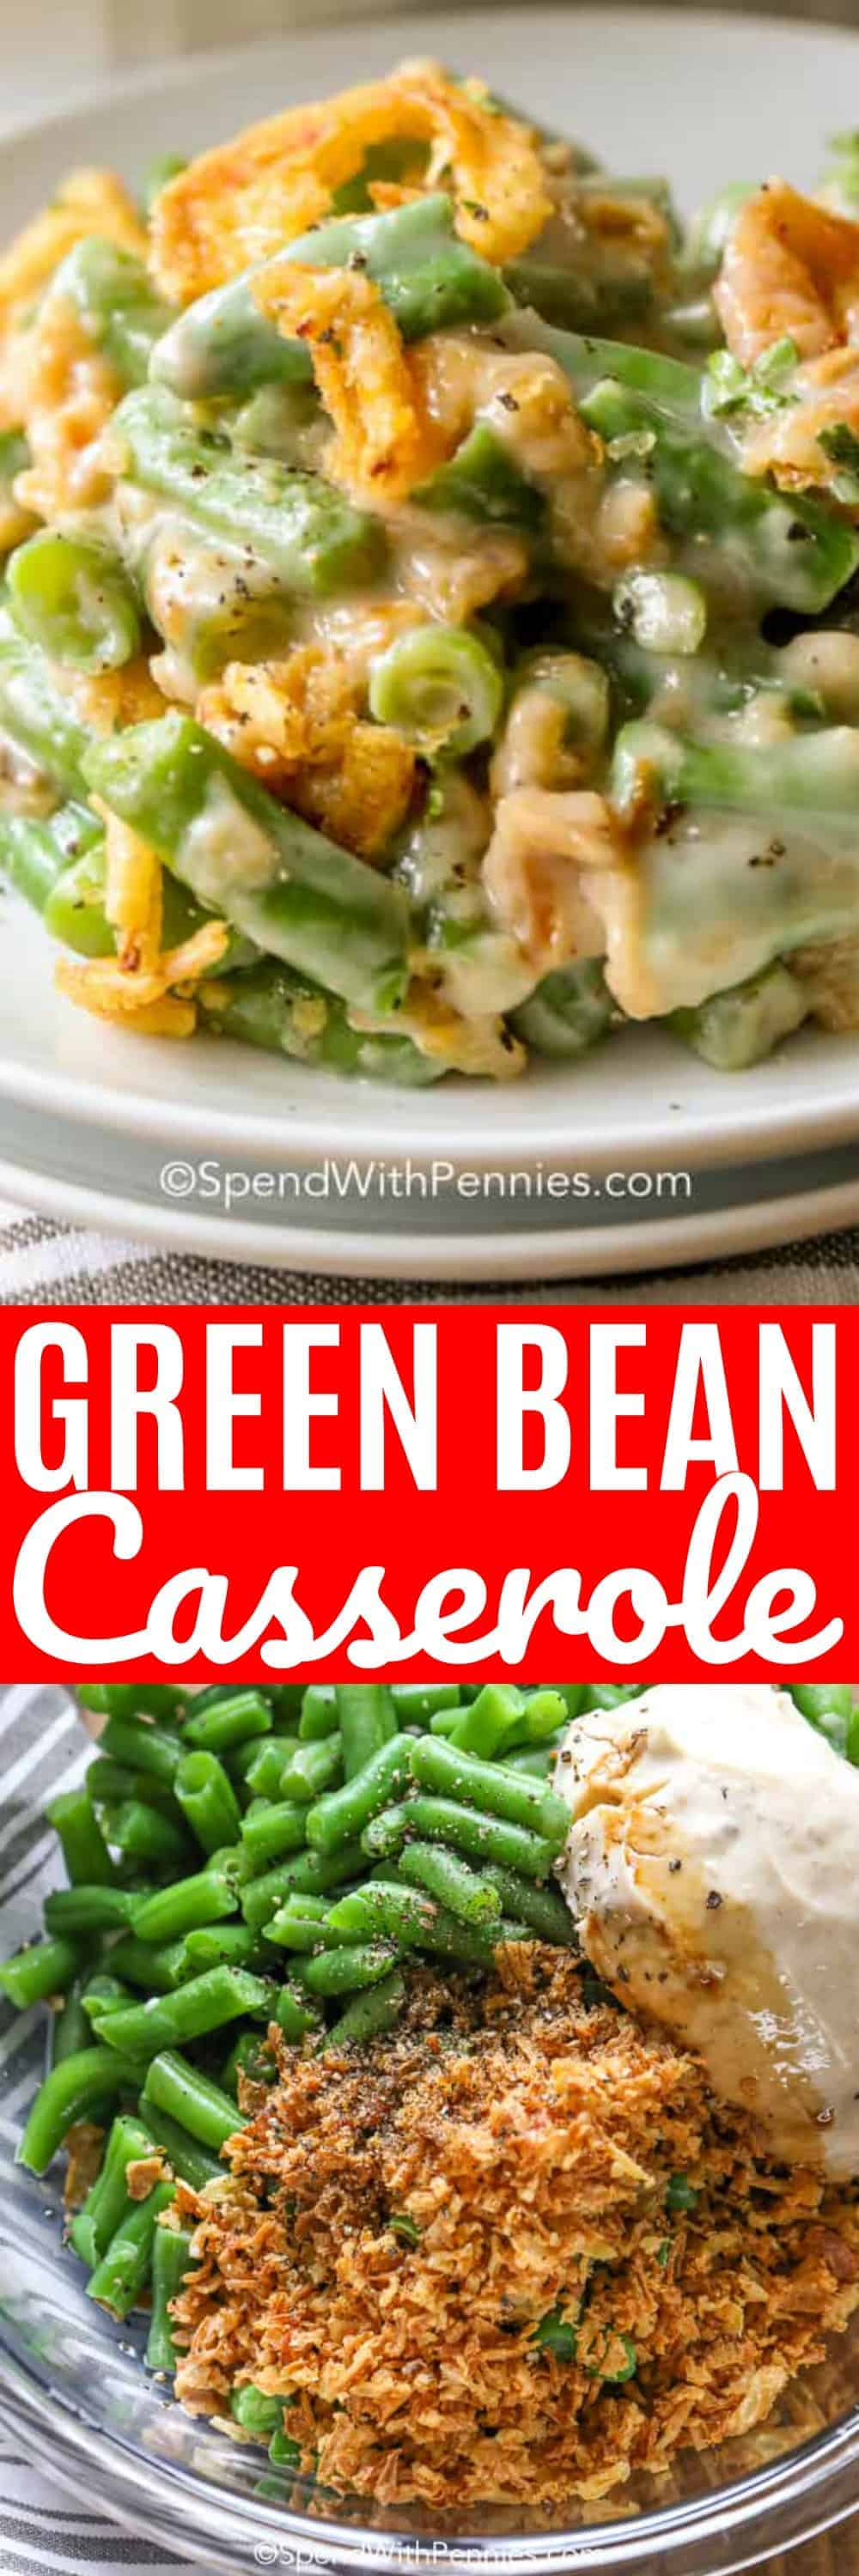 This creamy and crispy green bean casserole is my favorite dish to bring to potlucks and turkey dinners! #spendwithpennies #greenbeancasserole #casserole #greenbeans #casseroles #turkeydinner